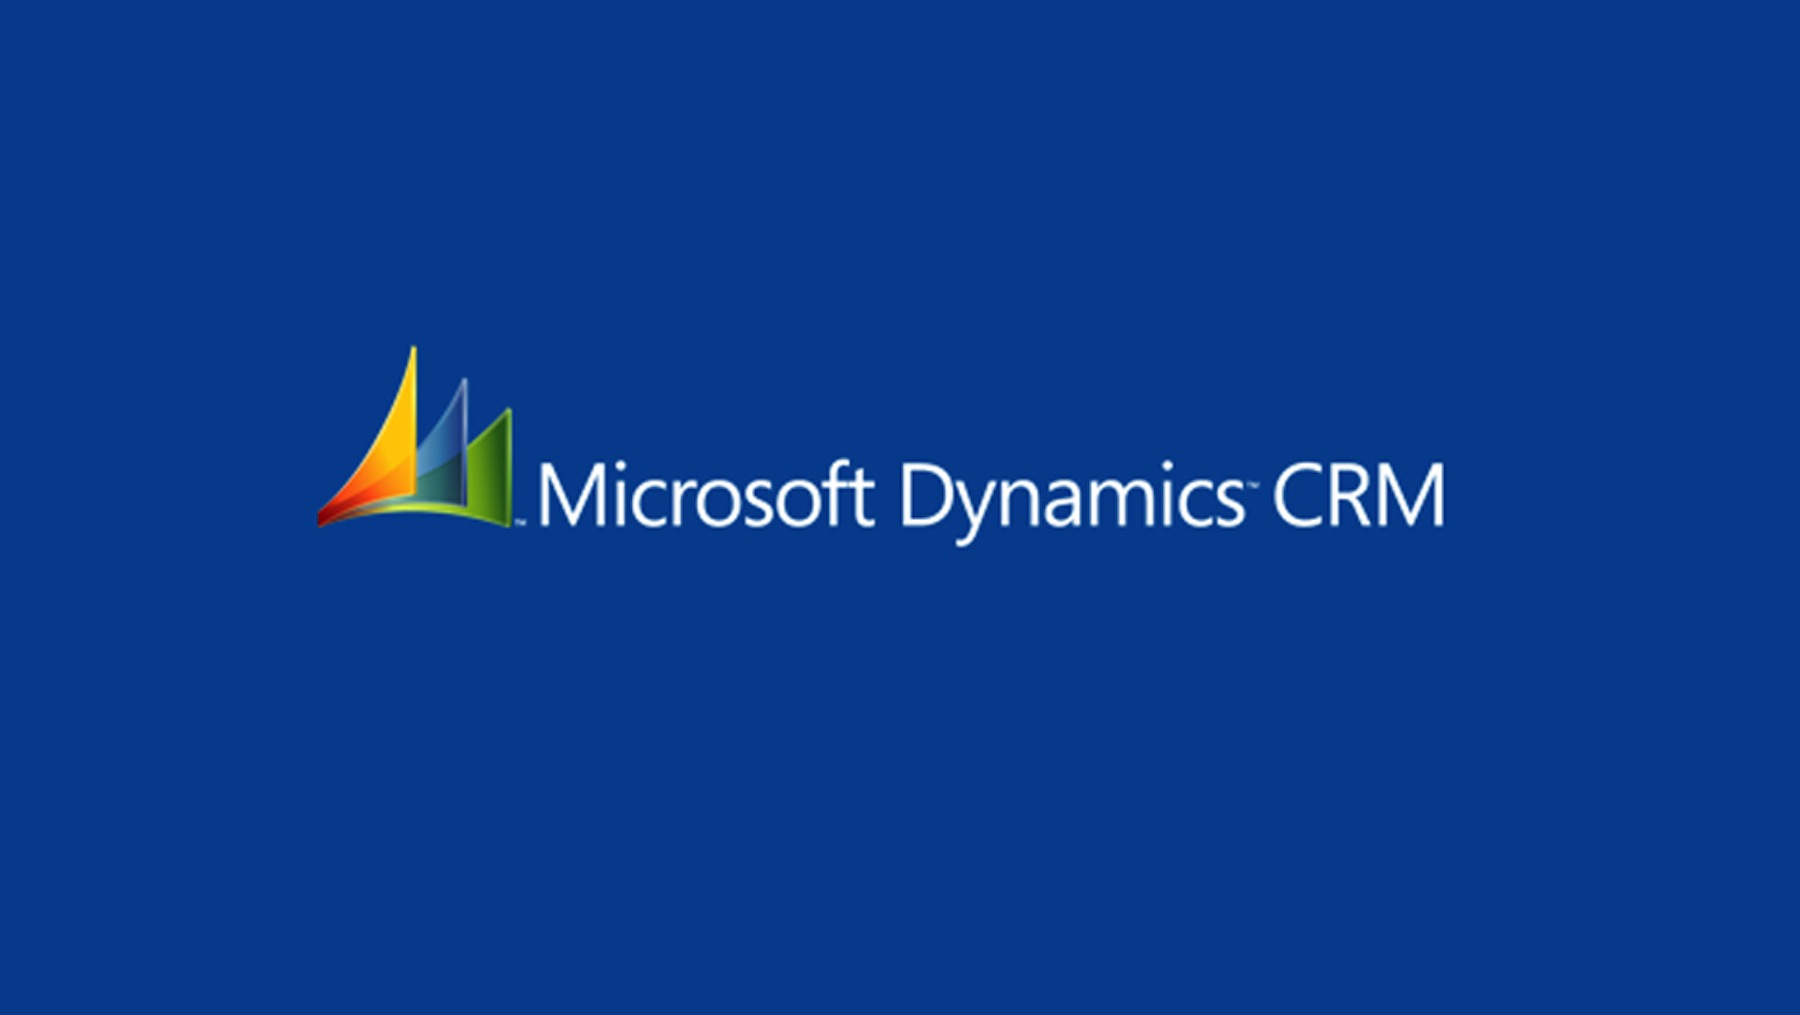 Microsoft issues guide on how to use Dynamics CRM 1800x1015